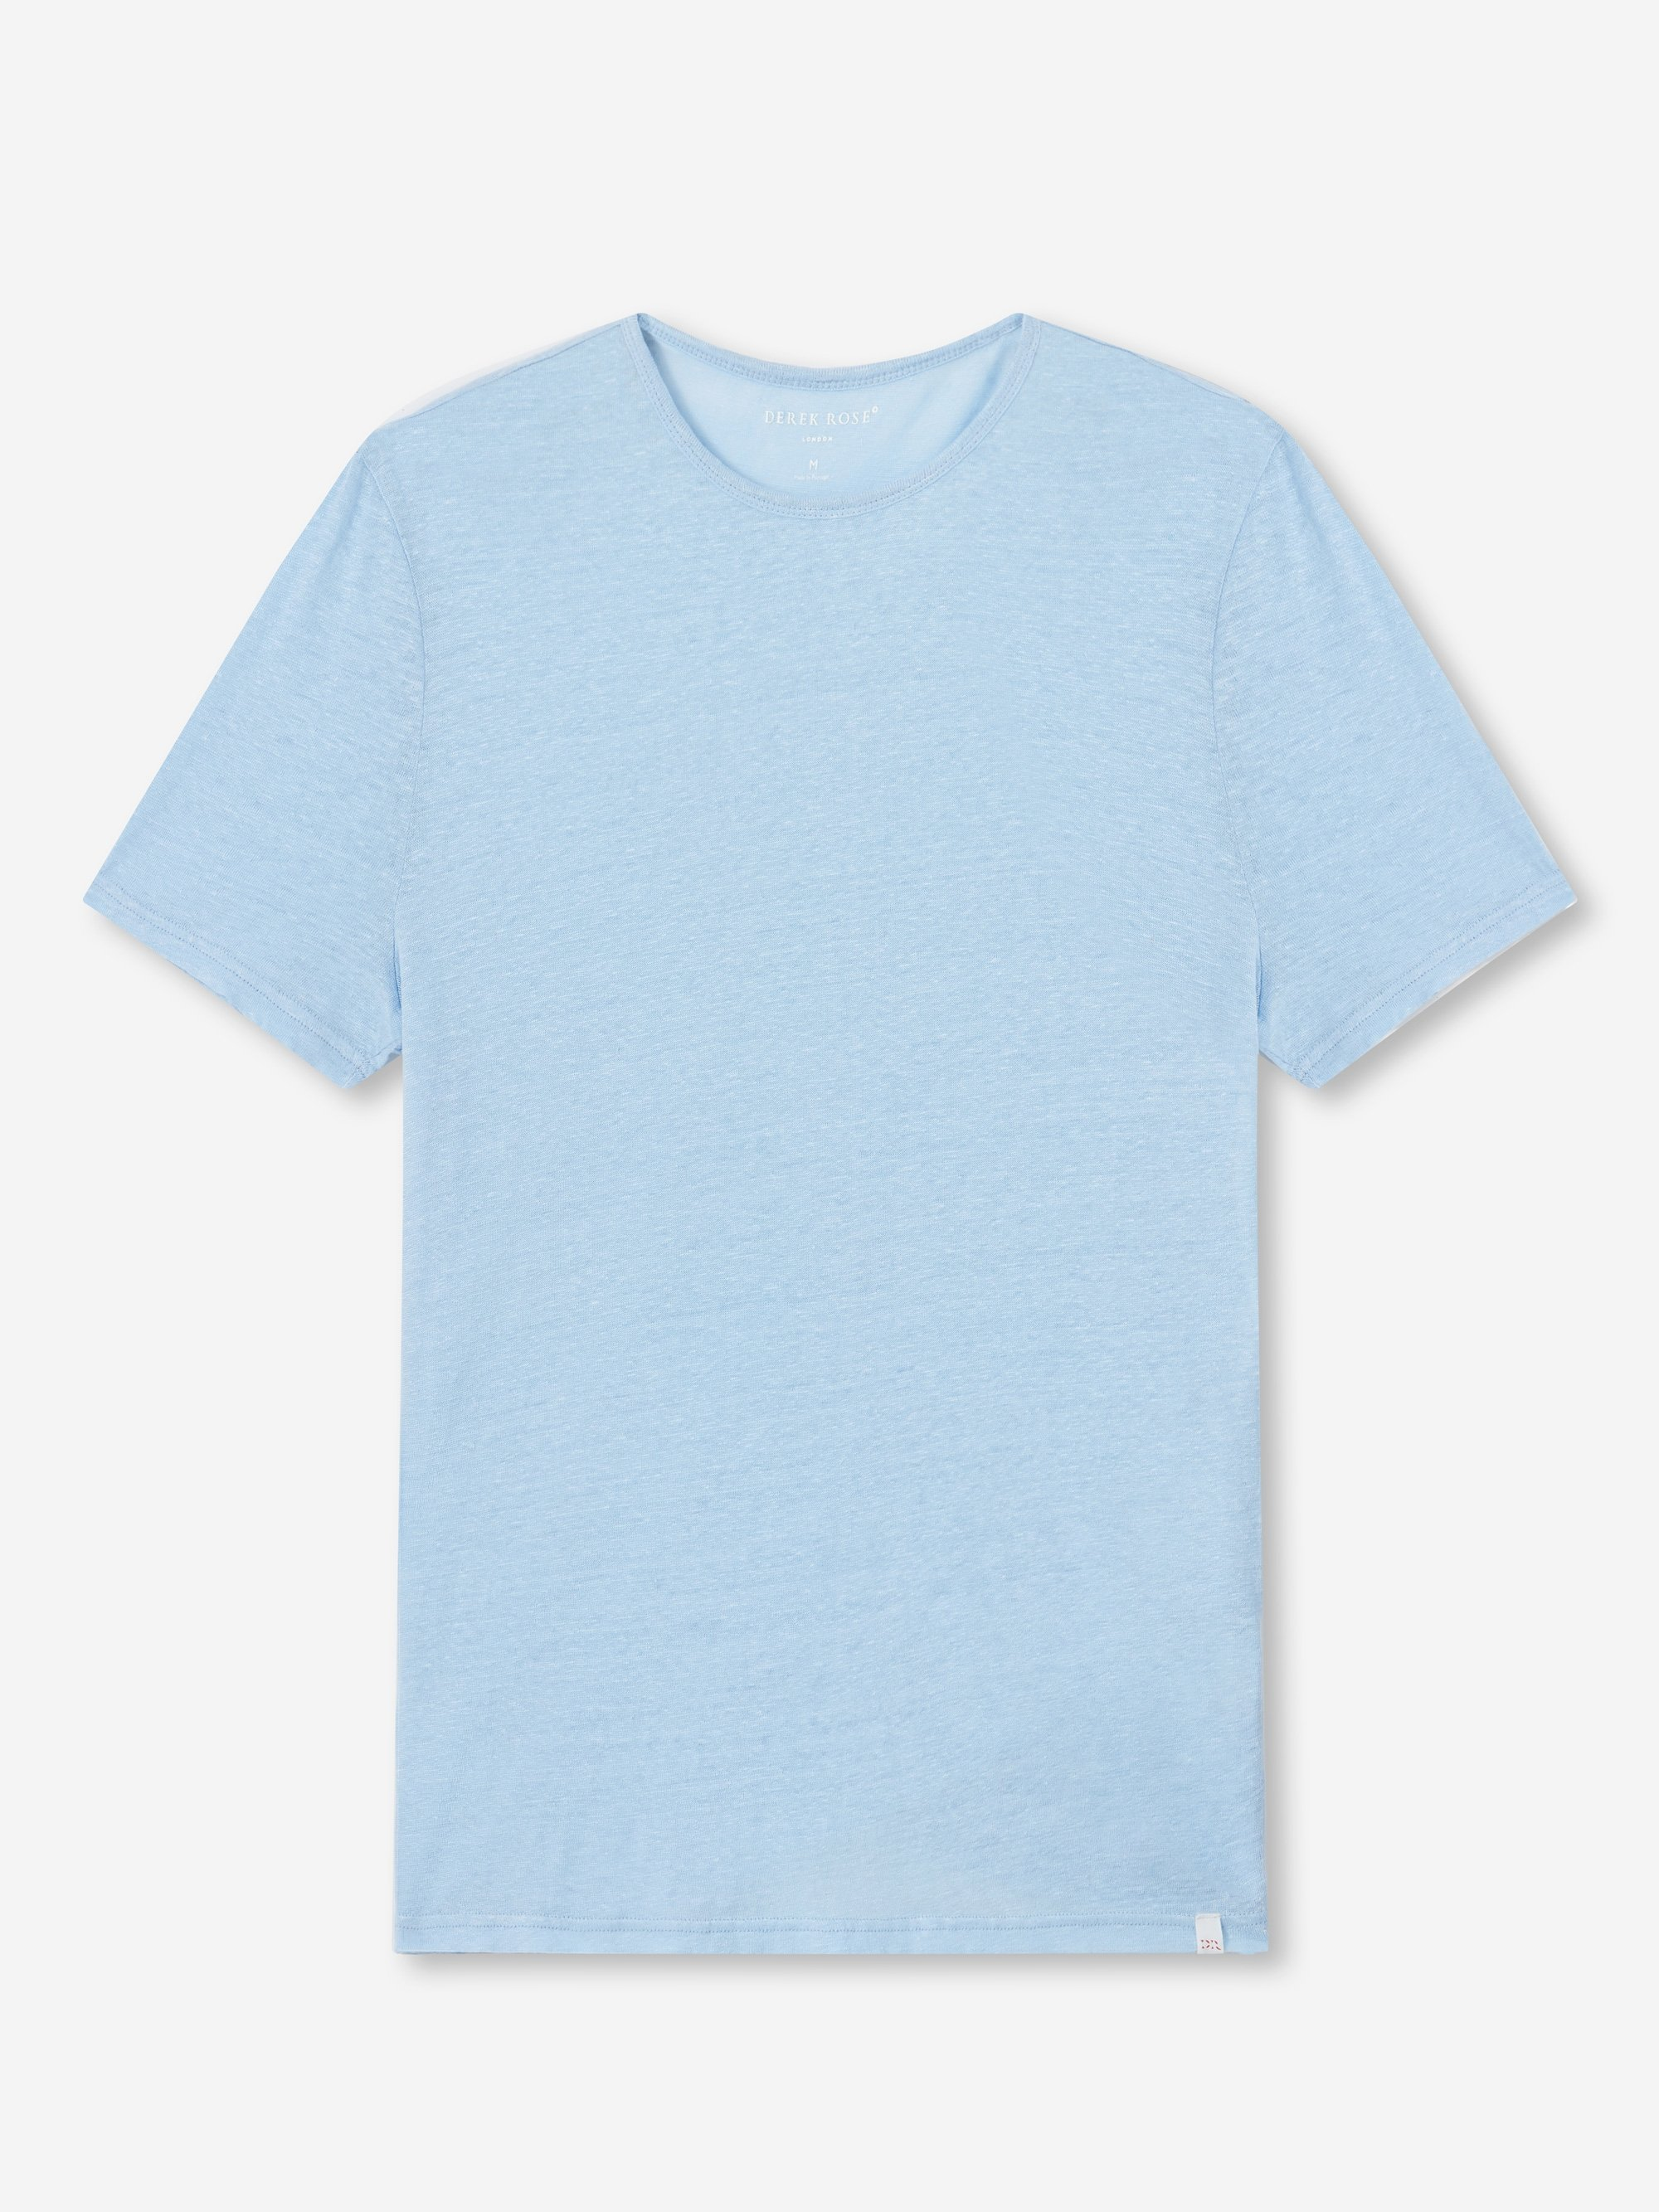 Men's Linen Short Sleeve T-Shirt Jordan 2 Pure Linen Sky